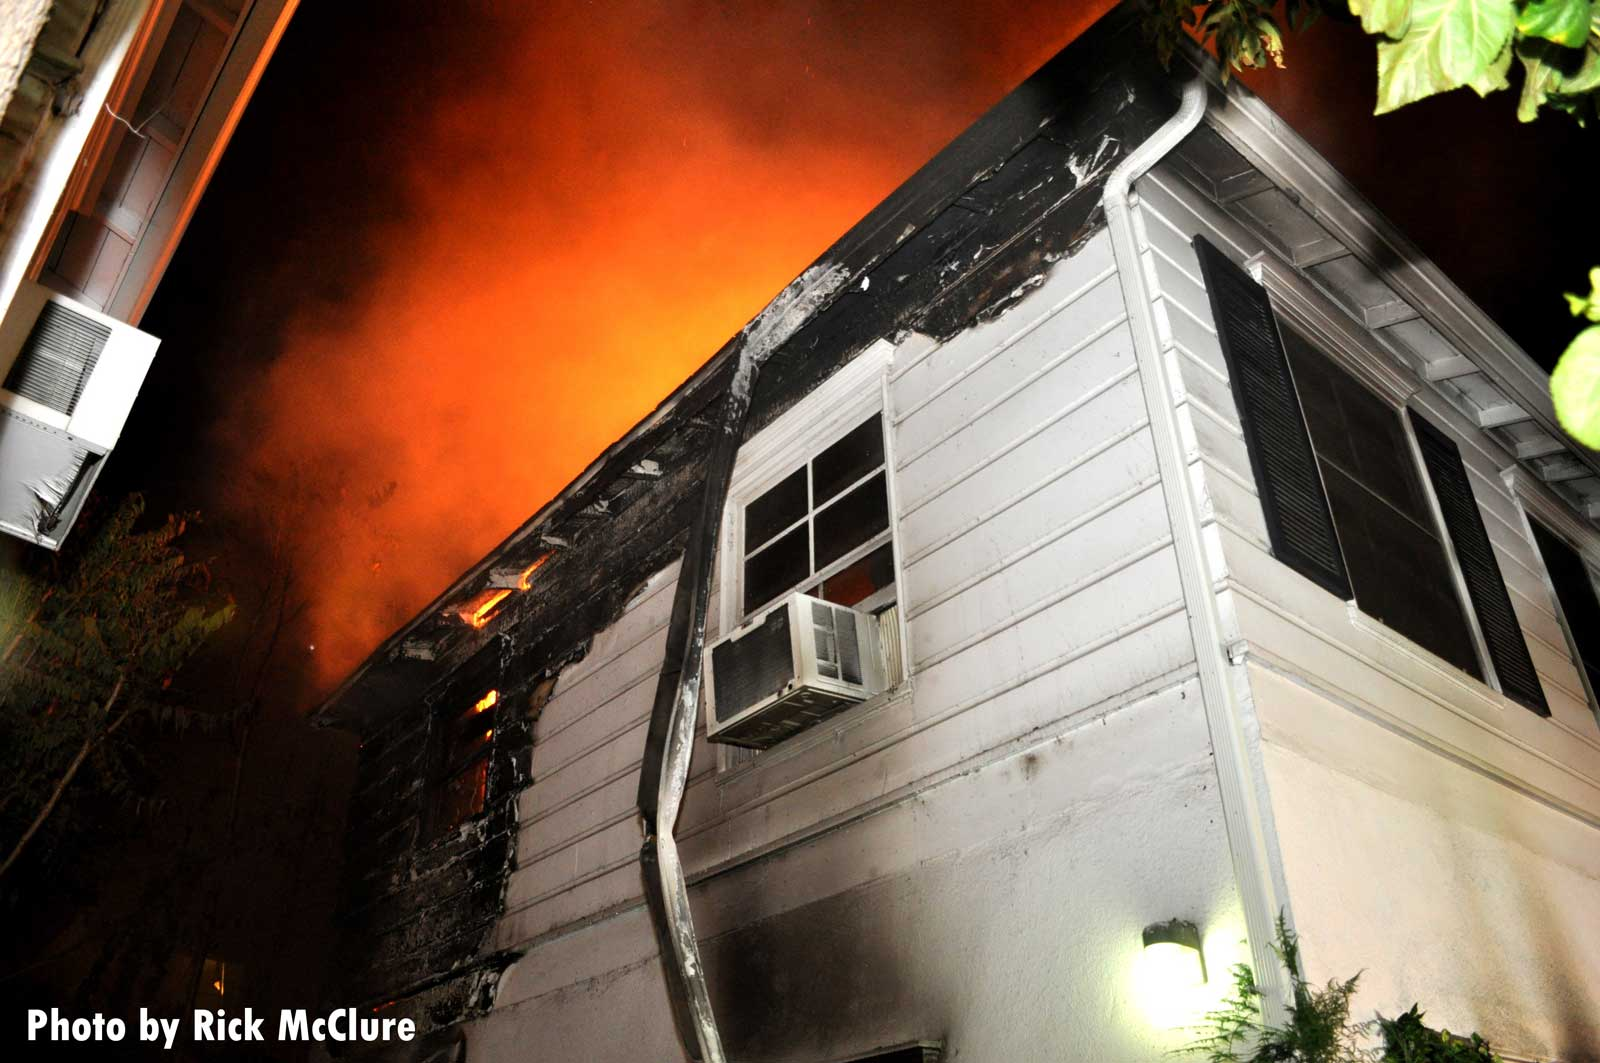 Looking up at flames atop the home